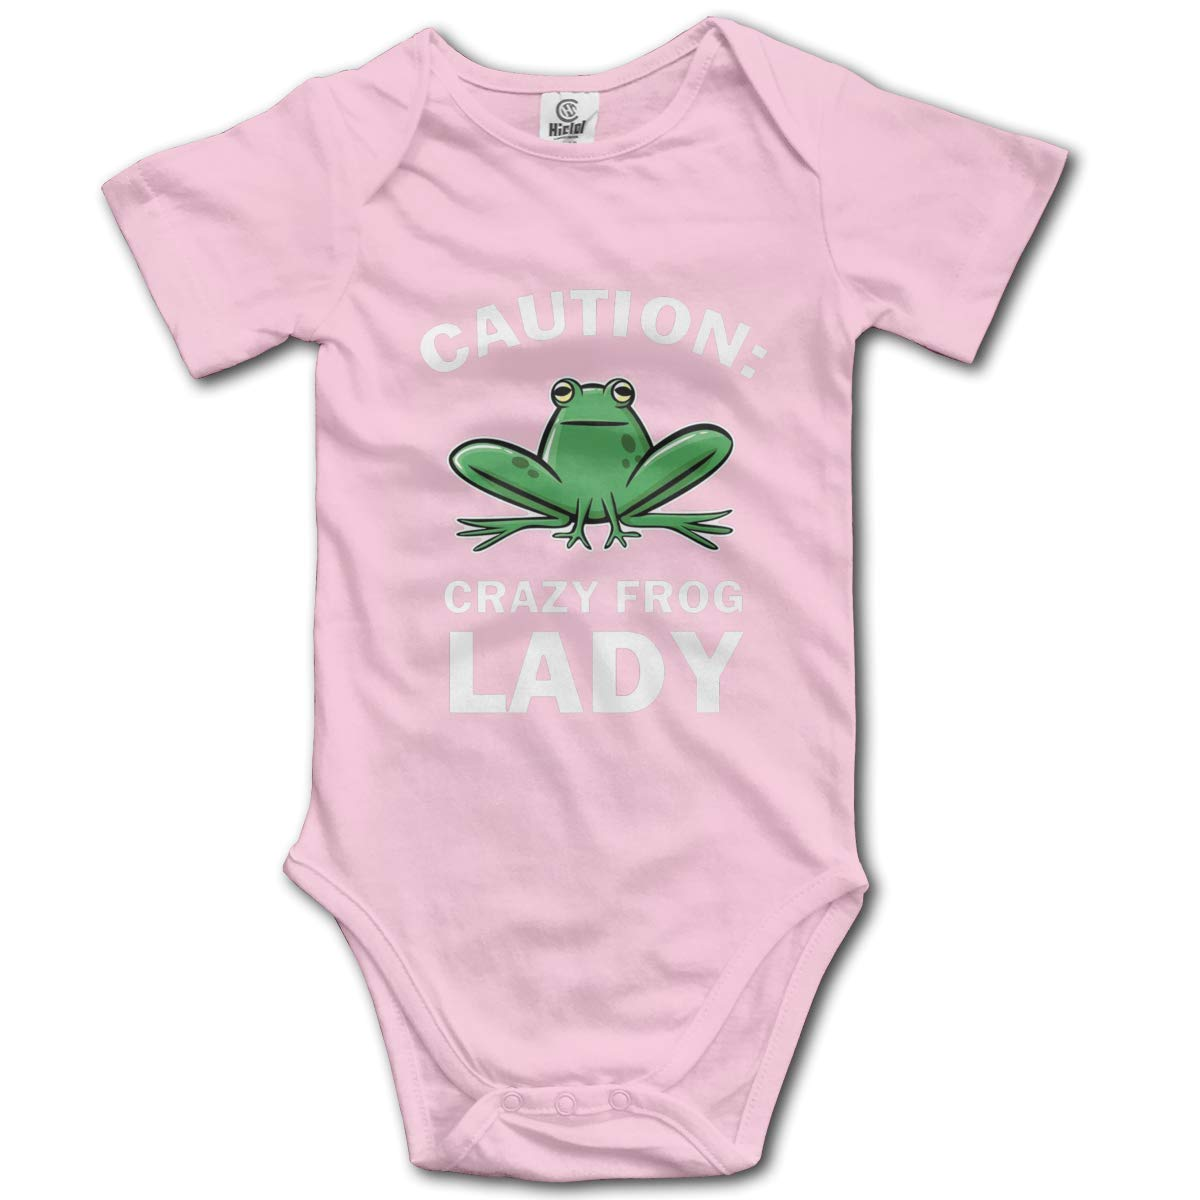 Coollifea Caution Crazy Frog Lady Logo Baby Romper 0-18 Months Newborn Baby Girls Boys Layette Rompers Black